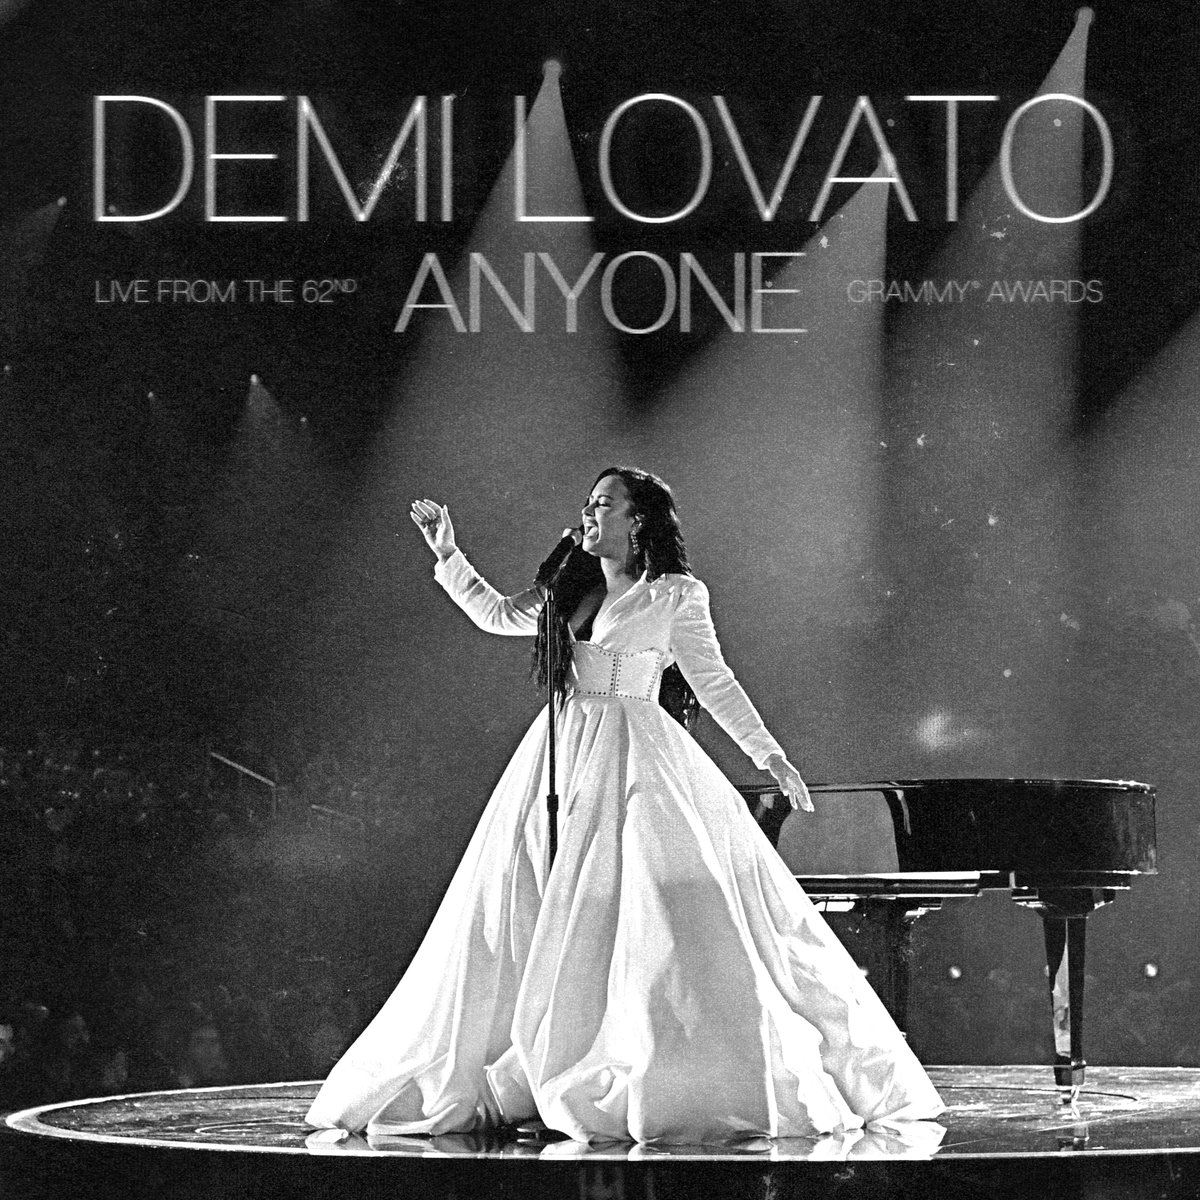 """Anyone"" live from the #GRAMMYs available now"